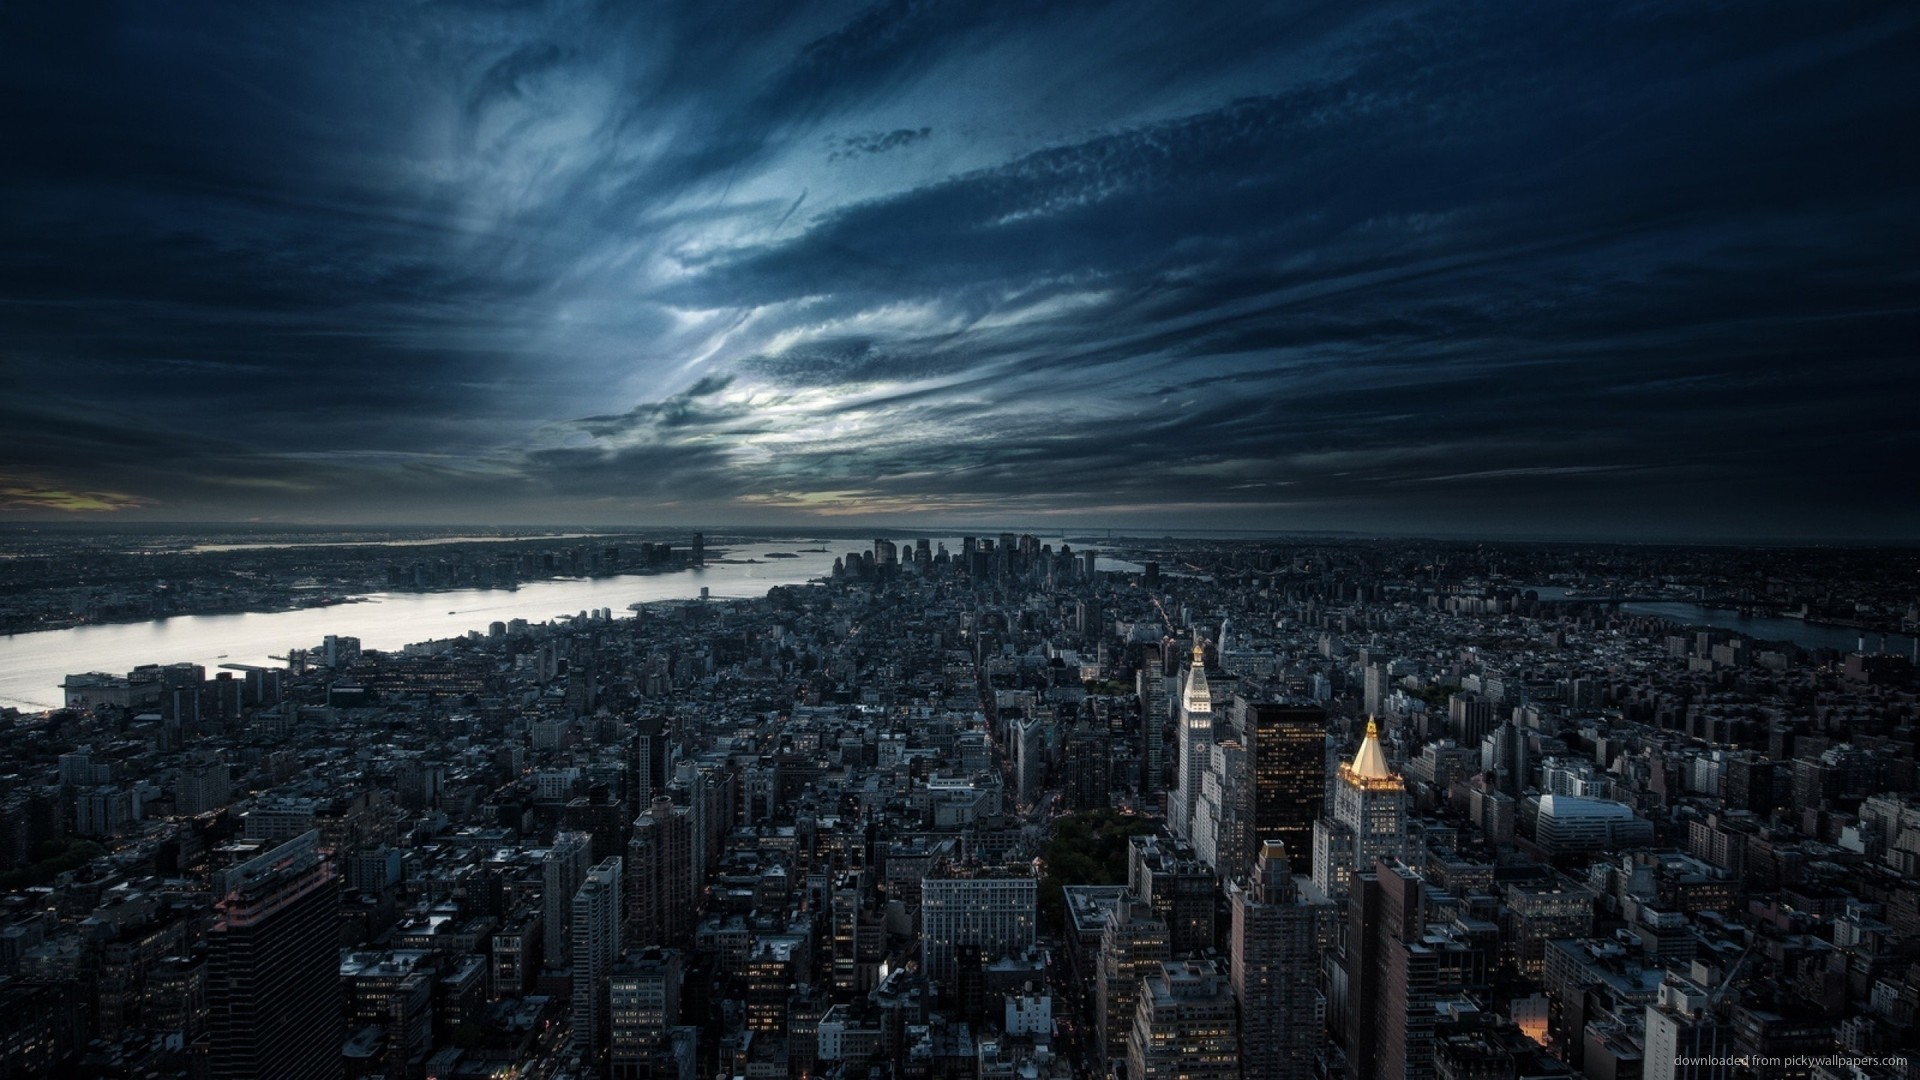 Dark Sky Wallpapers Android with High Definition Wallpaper px  410.83 KB